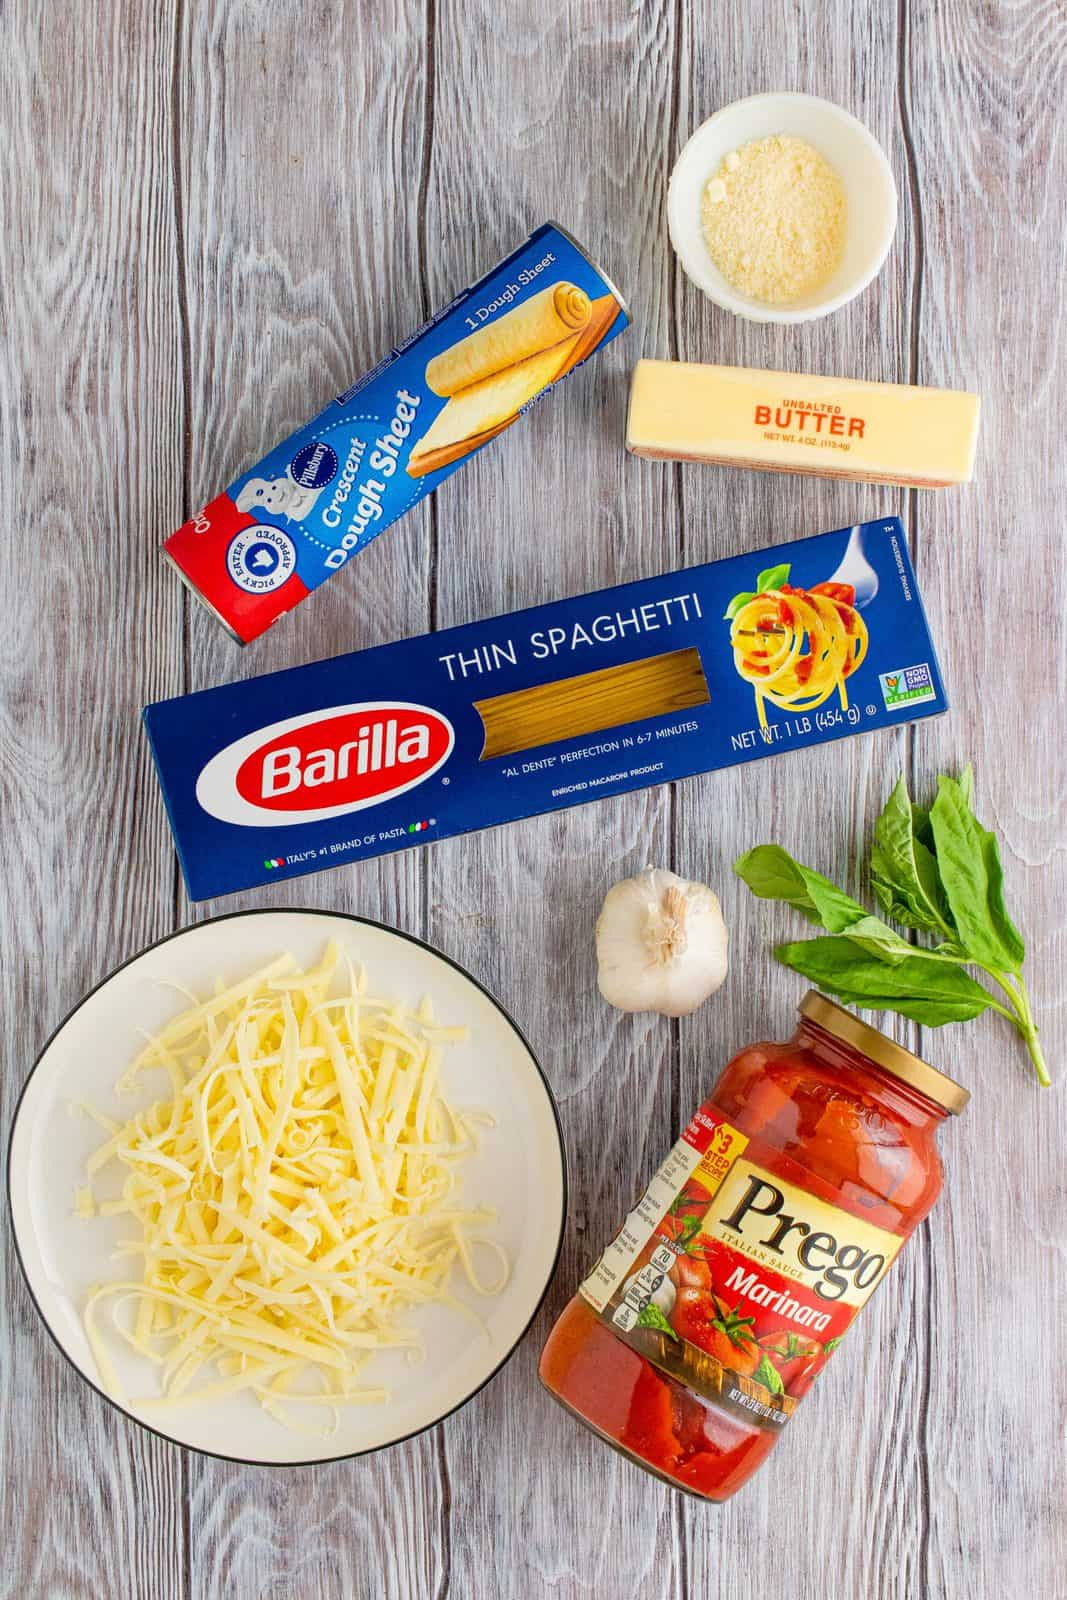 Ingredients needed: thin spaghetti noodles, marinara sauce, crescent roll dough sheet, shredded mozzarella cheese, unsalted butter, grated parmesan cheese, basil leaves and garlic.